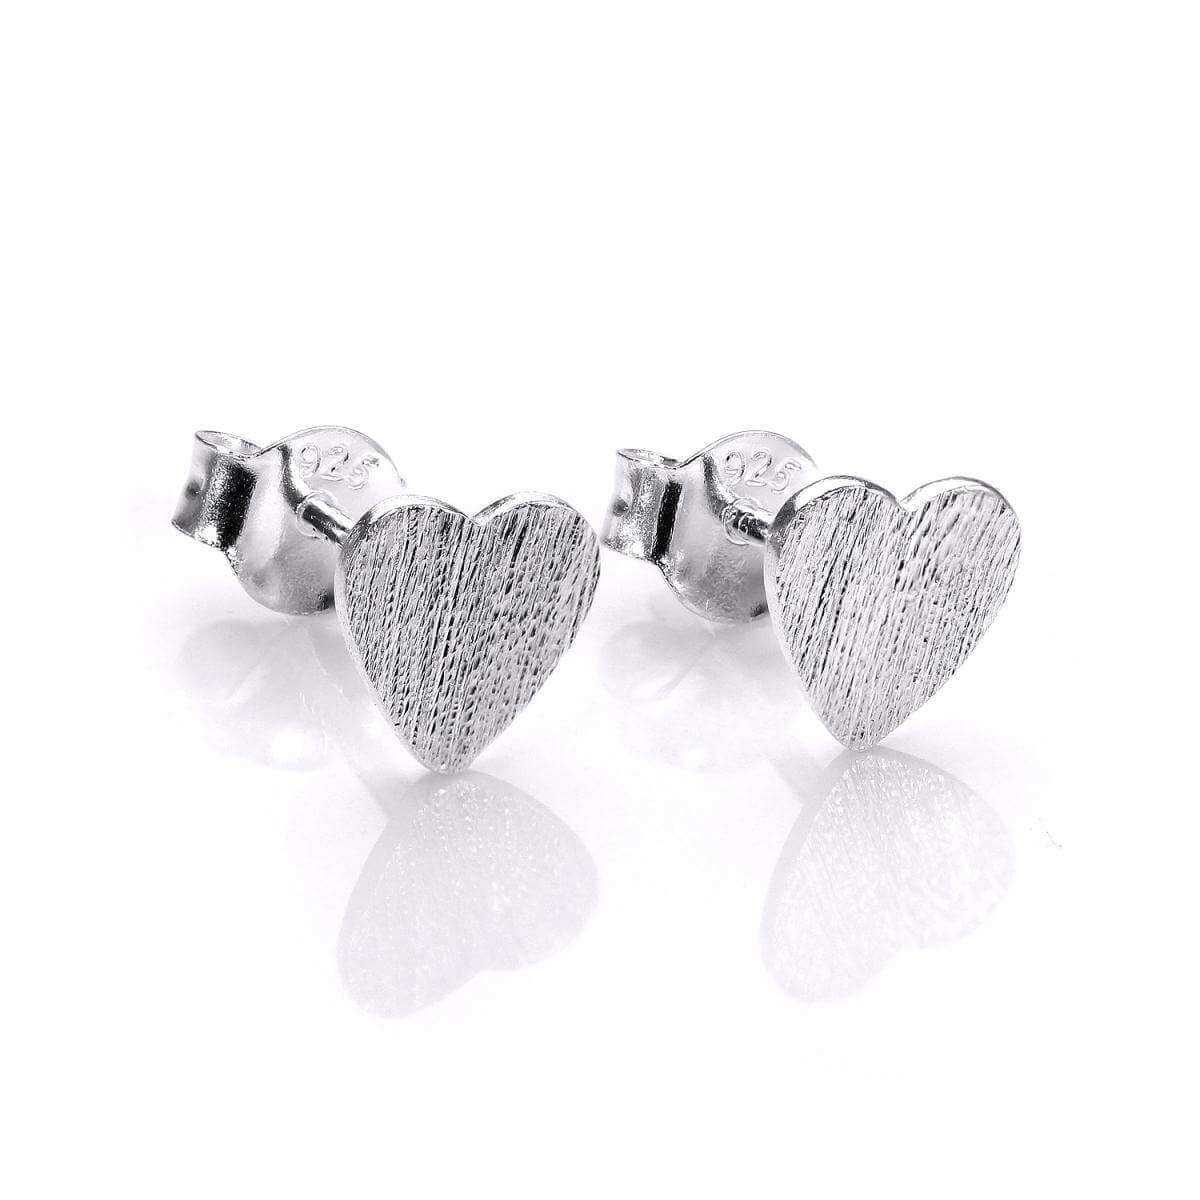 Brushed Sterling Silver Flat Heart Stud Earrings